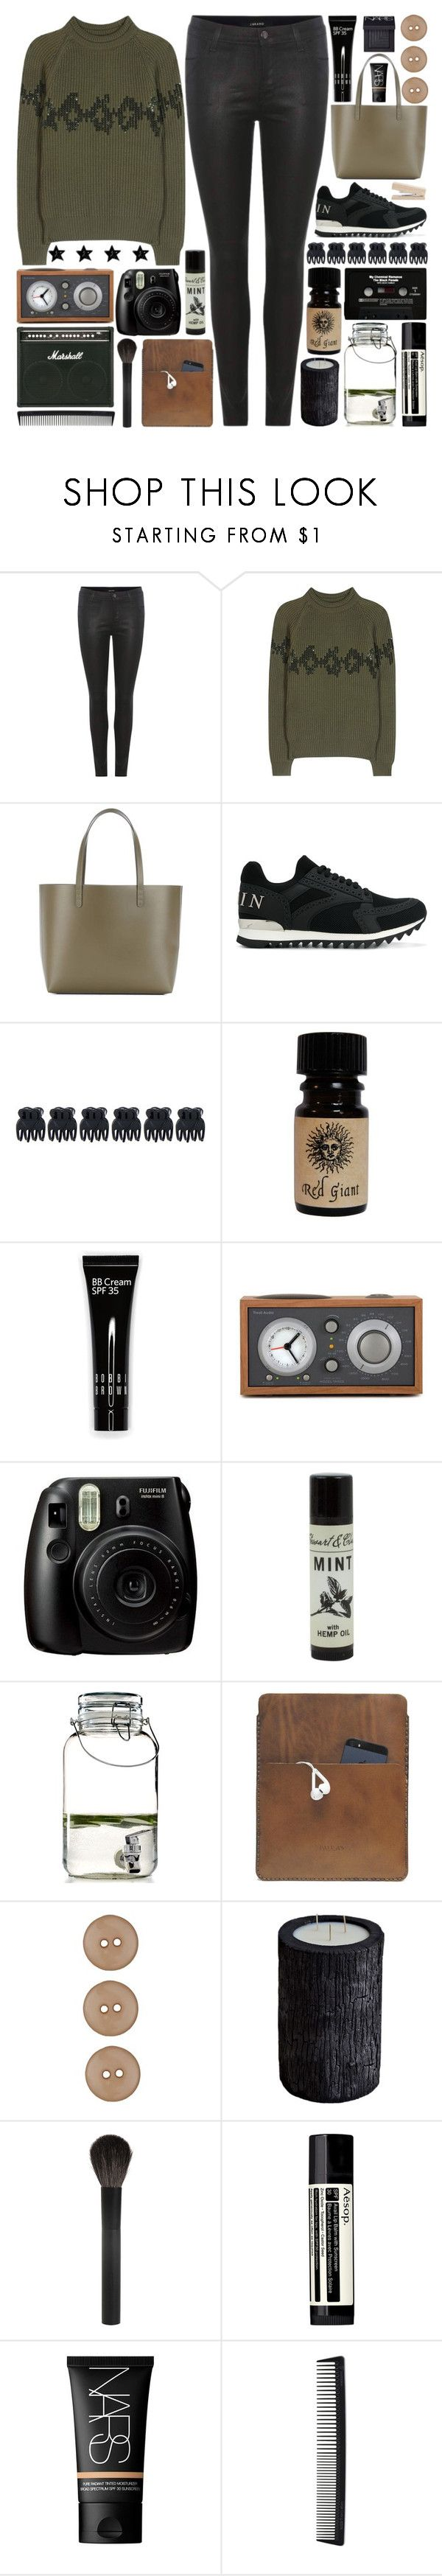 """""""All I gave to you was my time, my green, my favorite jeans, and everything you choose"""" by pure-and-valuable ❤ liked on Polyvore featuring J Brand, Nina Ricci, Mansur Gavriel, Philipp Plein, Accessorize, Bobbi Brown Cosmetics, CASSETTE, Tivoli Audio, Fujifilm and The Cellar"""